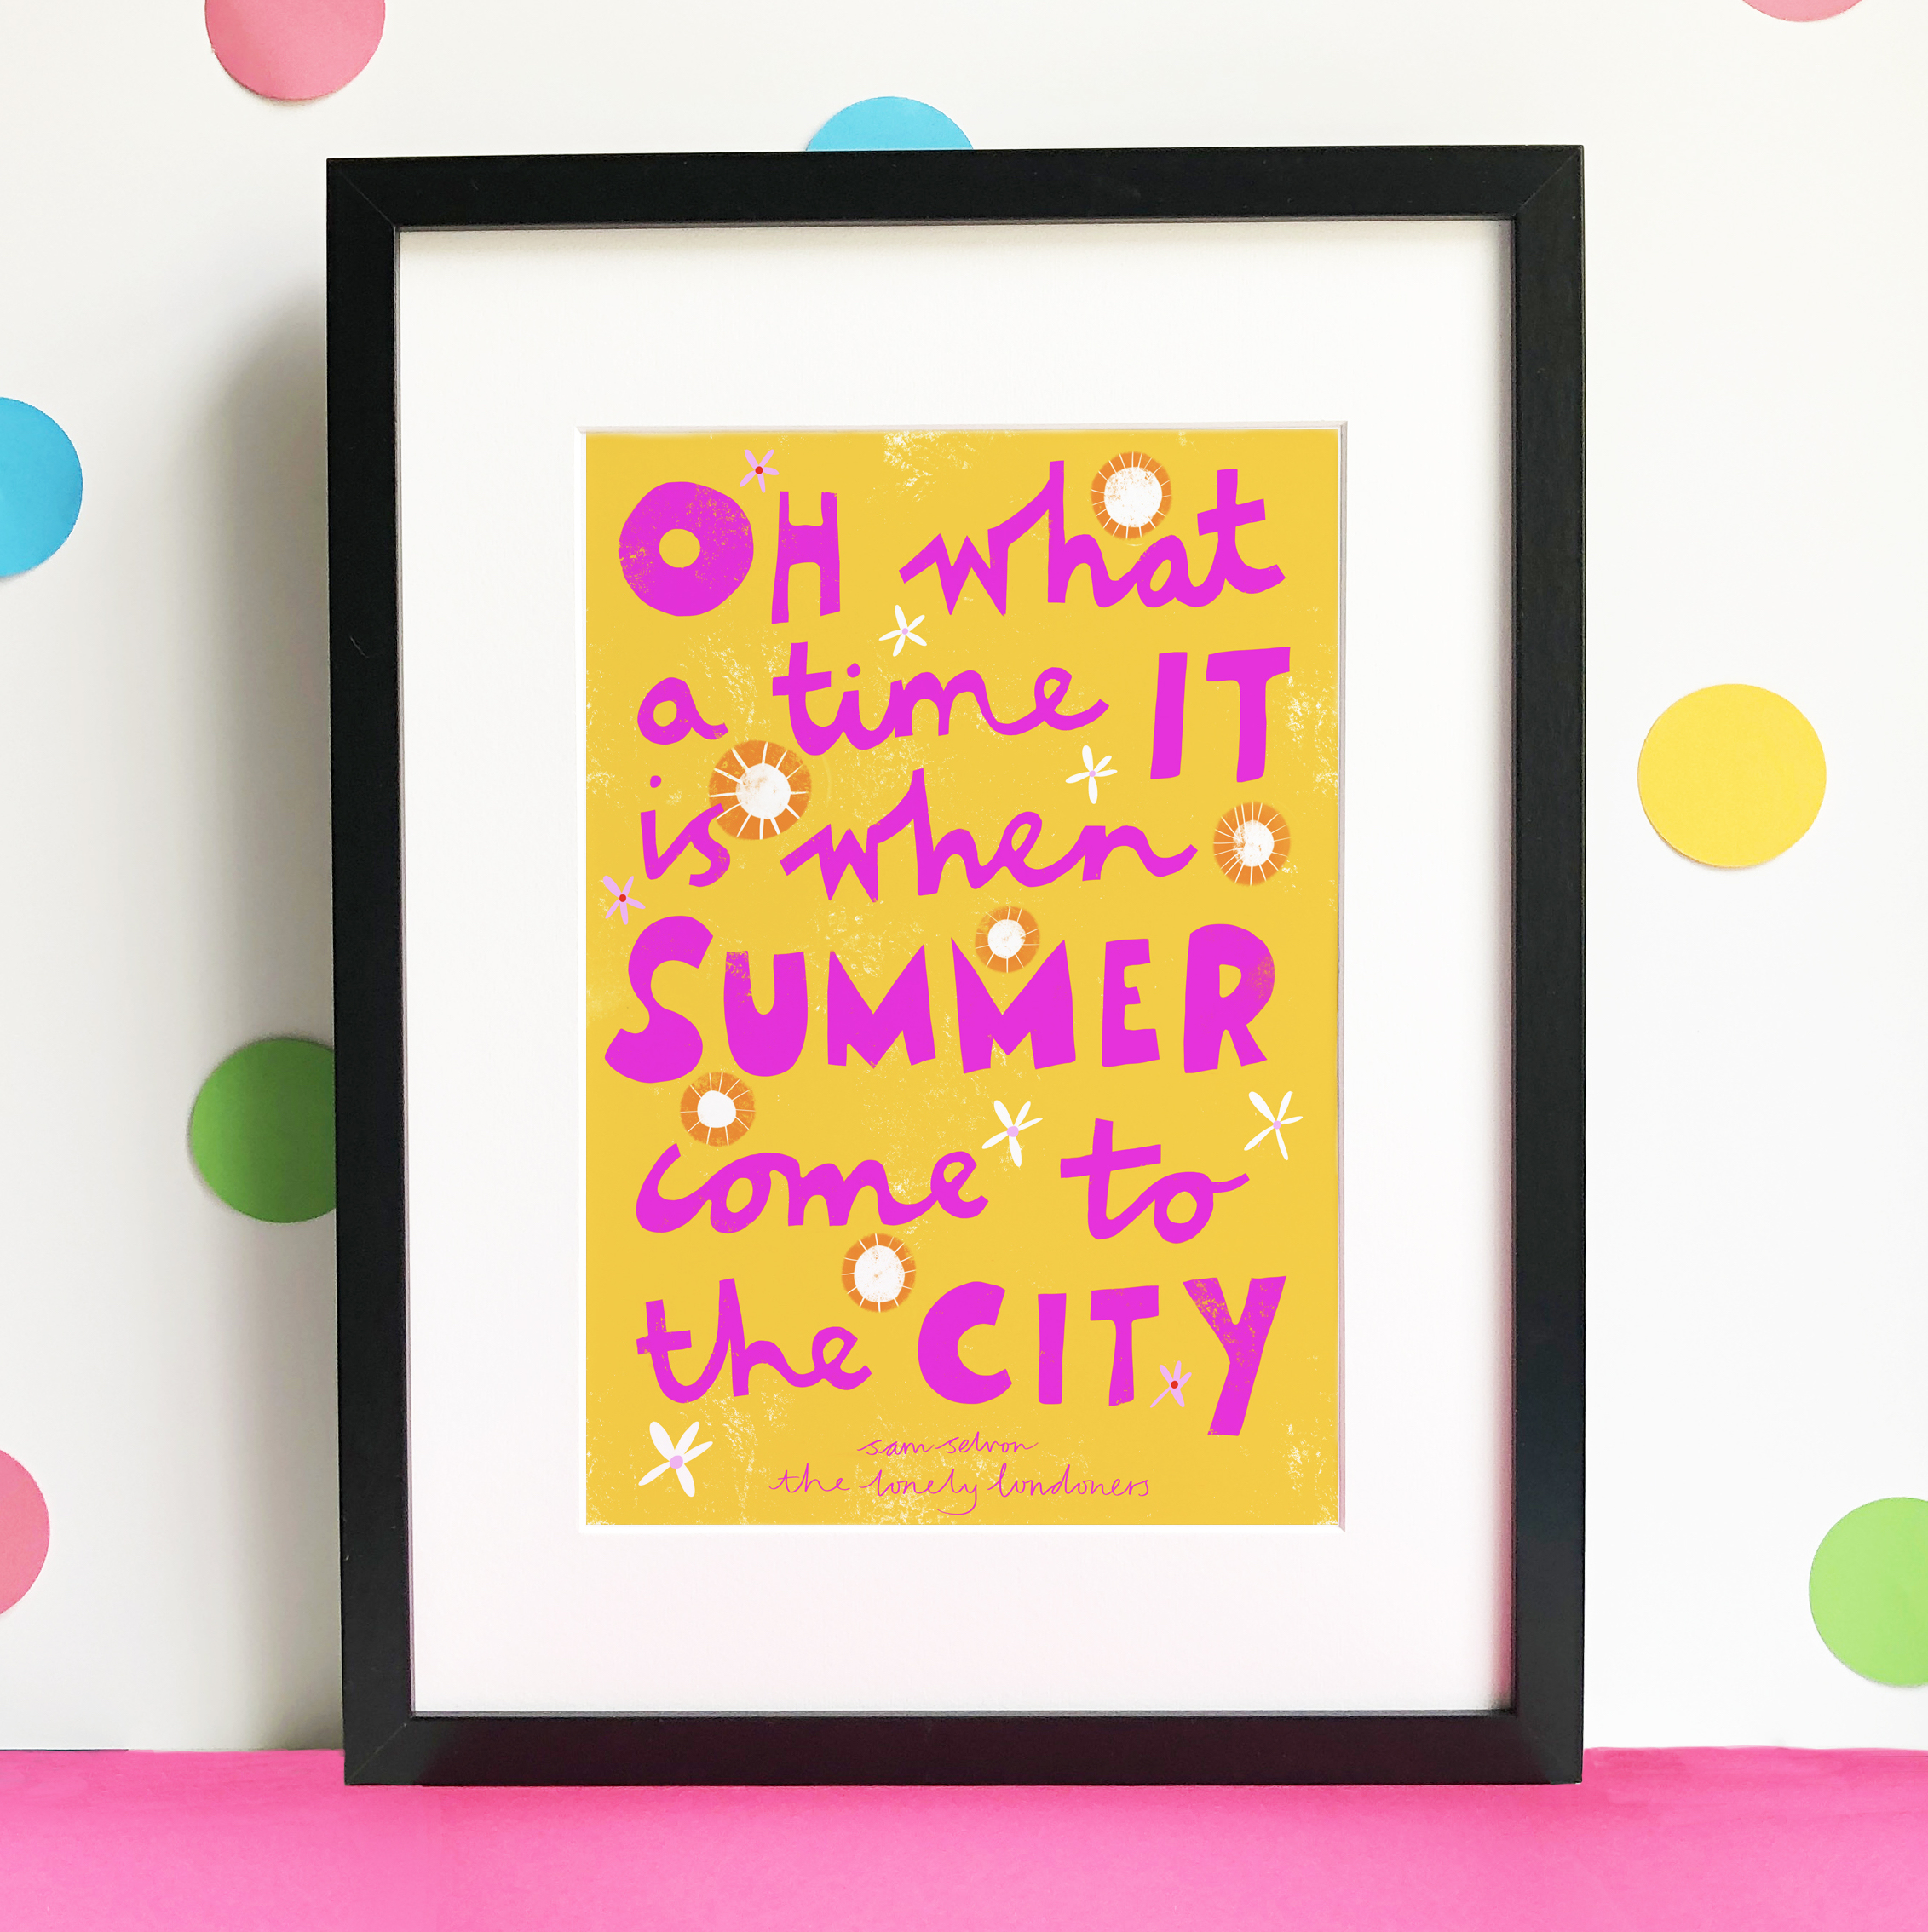 Gift for book lover - Typography Giclee art print of a quote from The Lonely Londoners, written by Sam Selvon, and created by Happy Stuff Studio